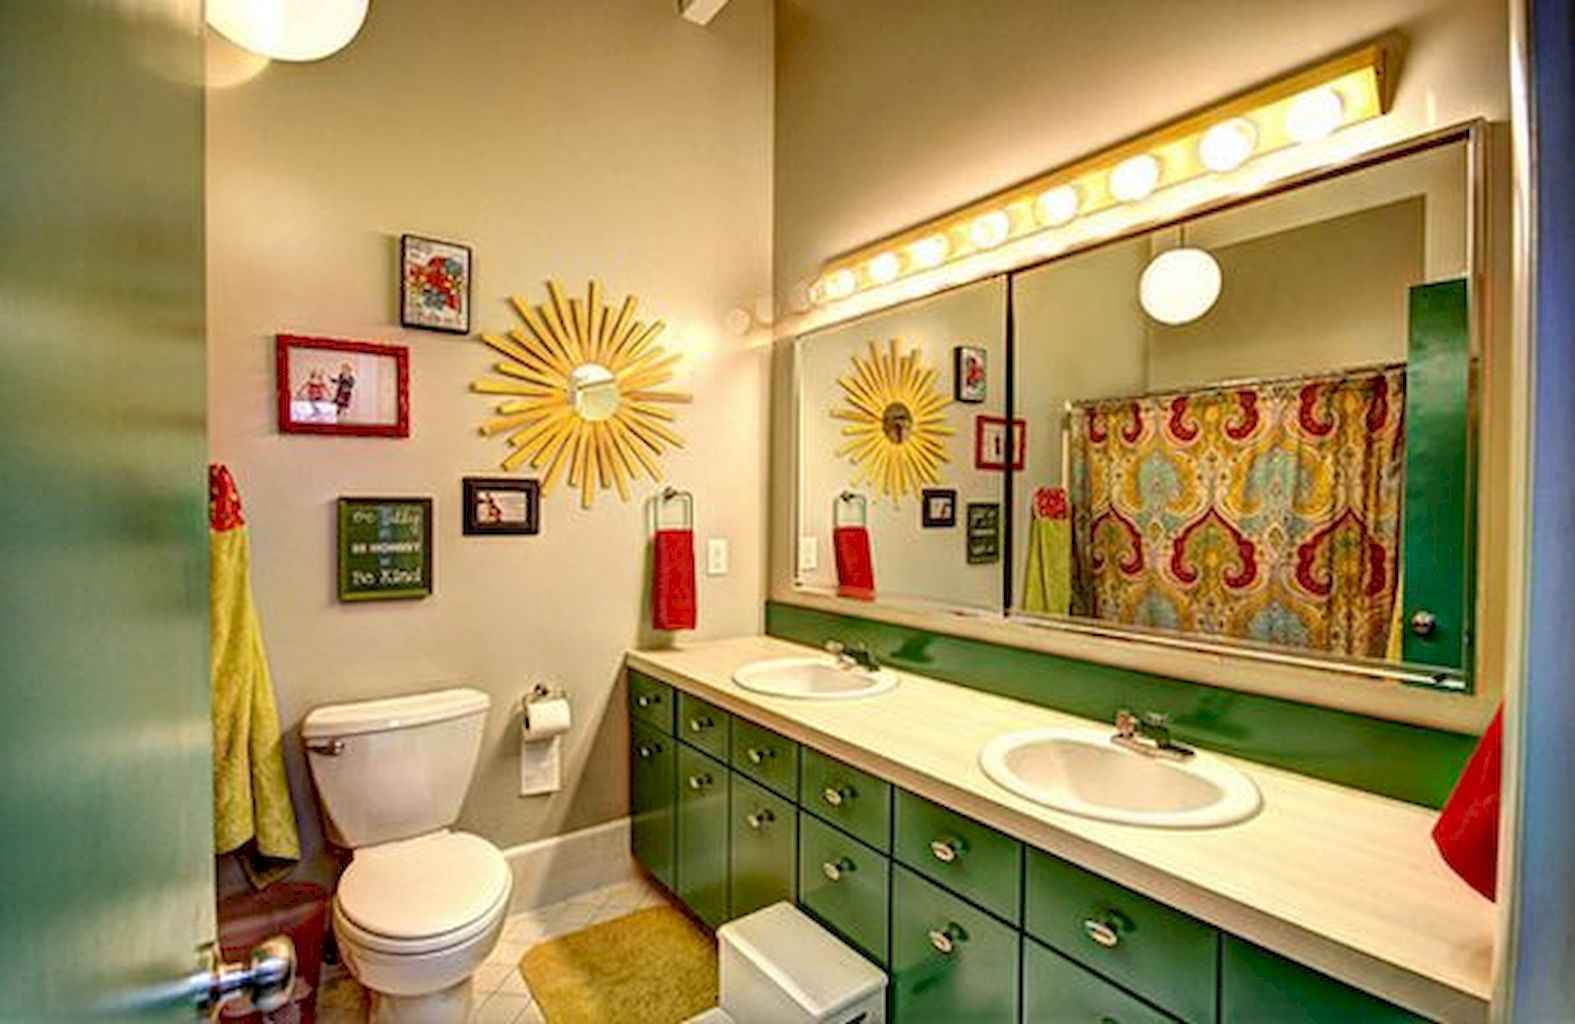 55 Cool and Relax Bathroom Decor Ideas (24)